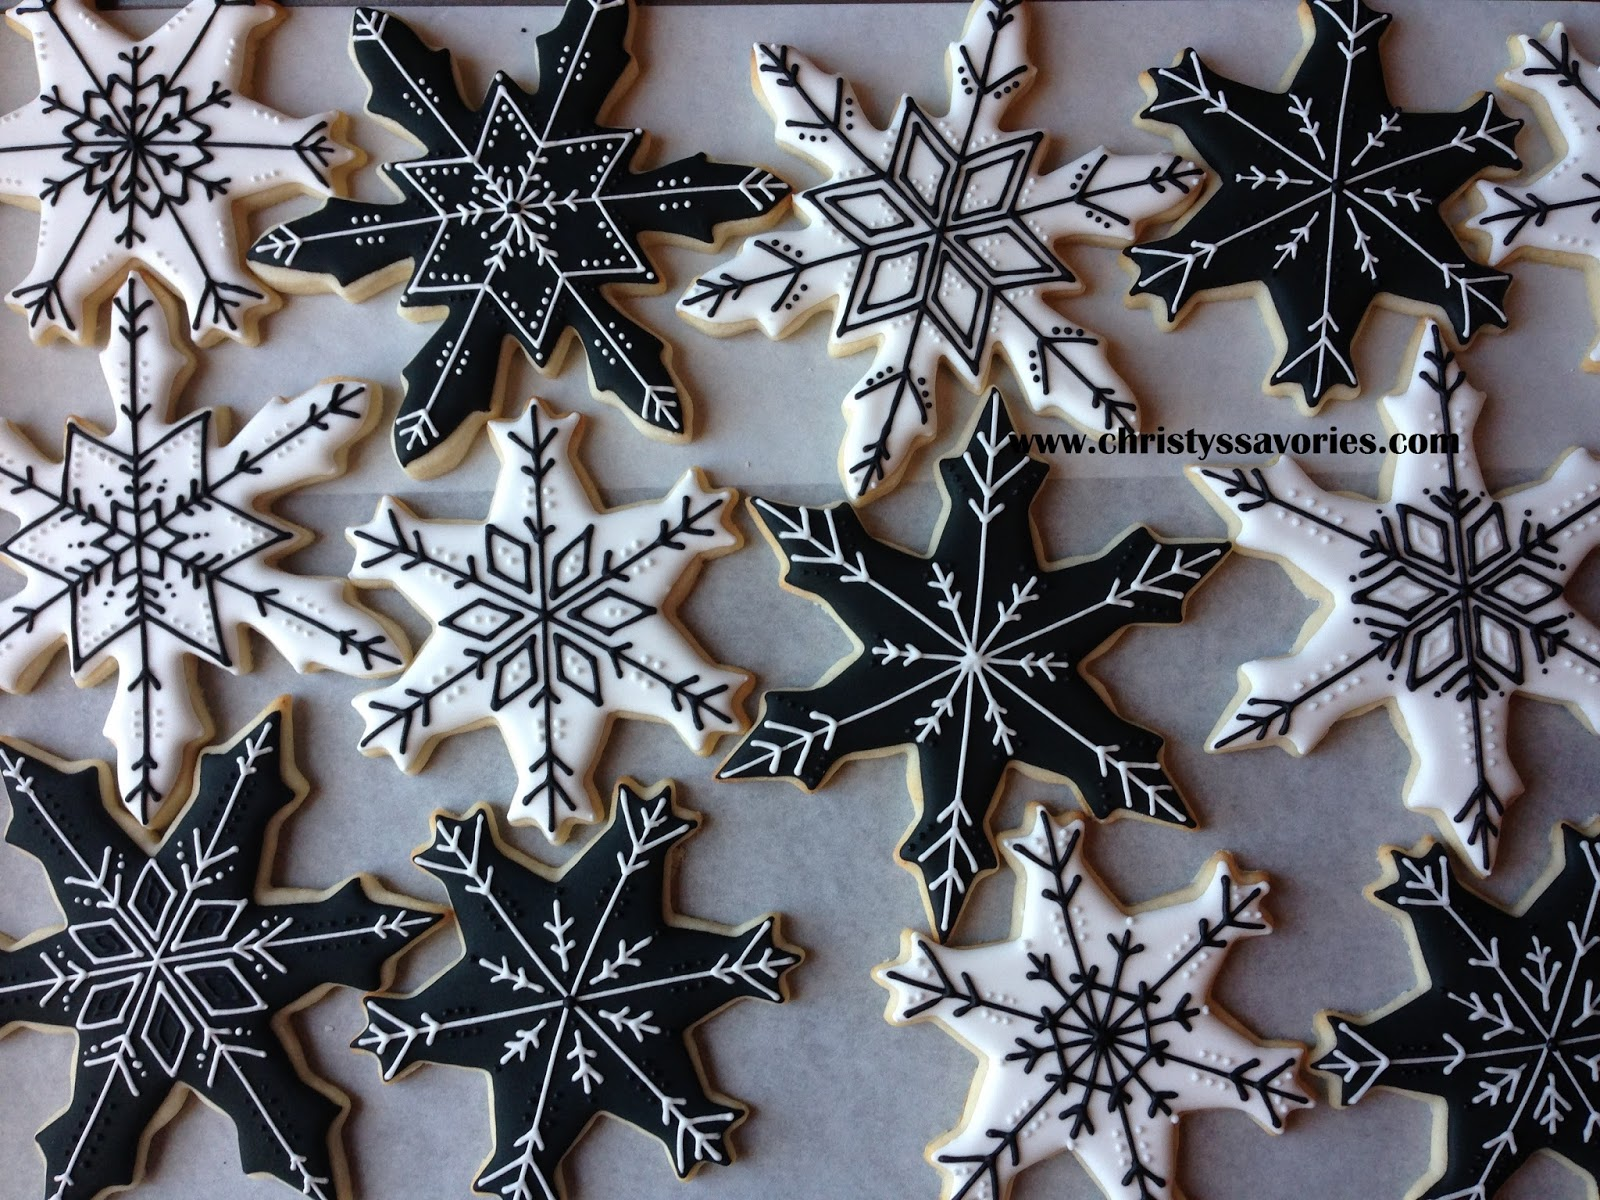 Black And White Christmas.Christy S Savories Black And White Christmas Cookies